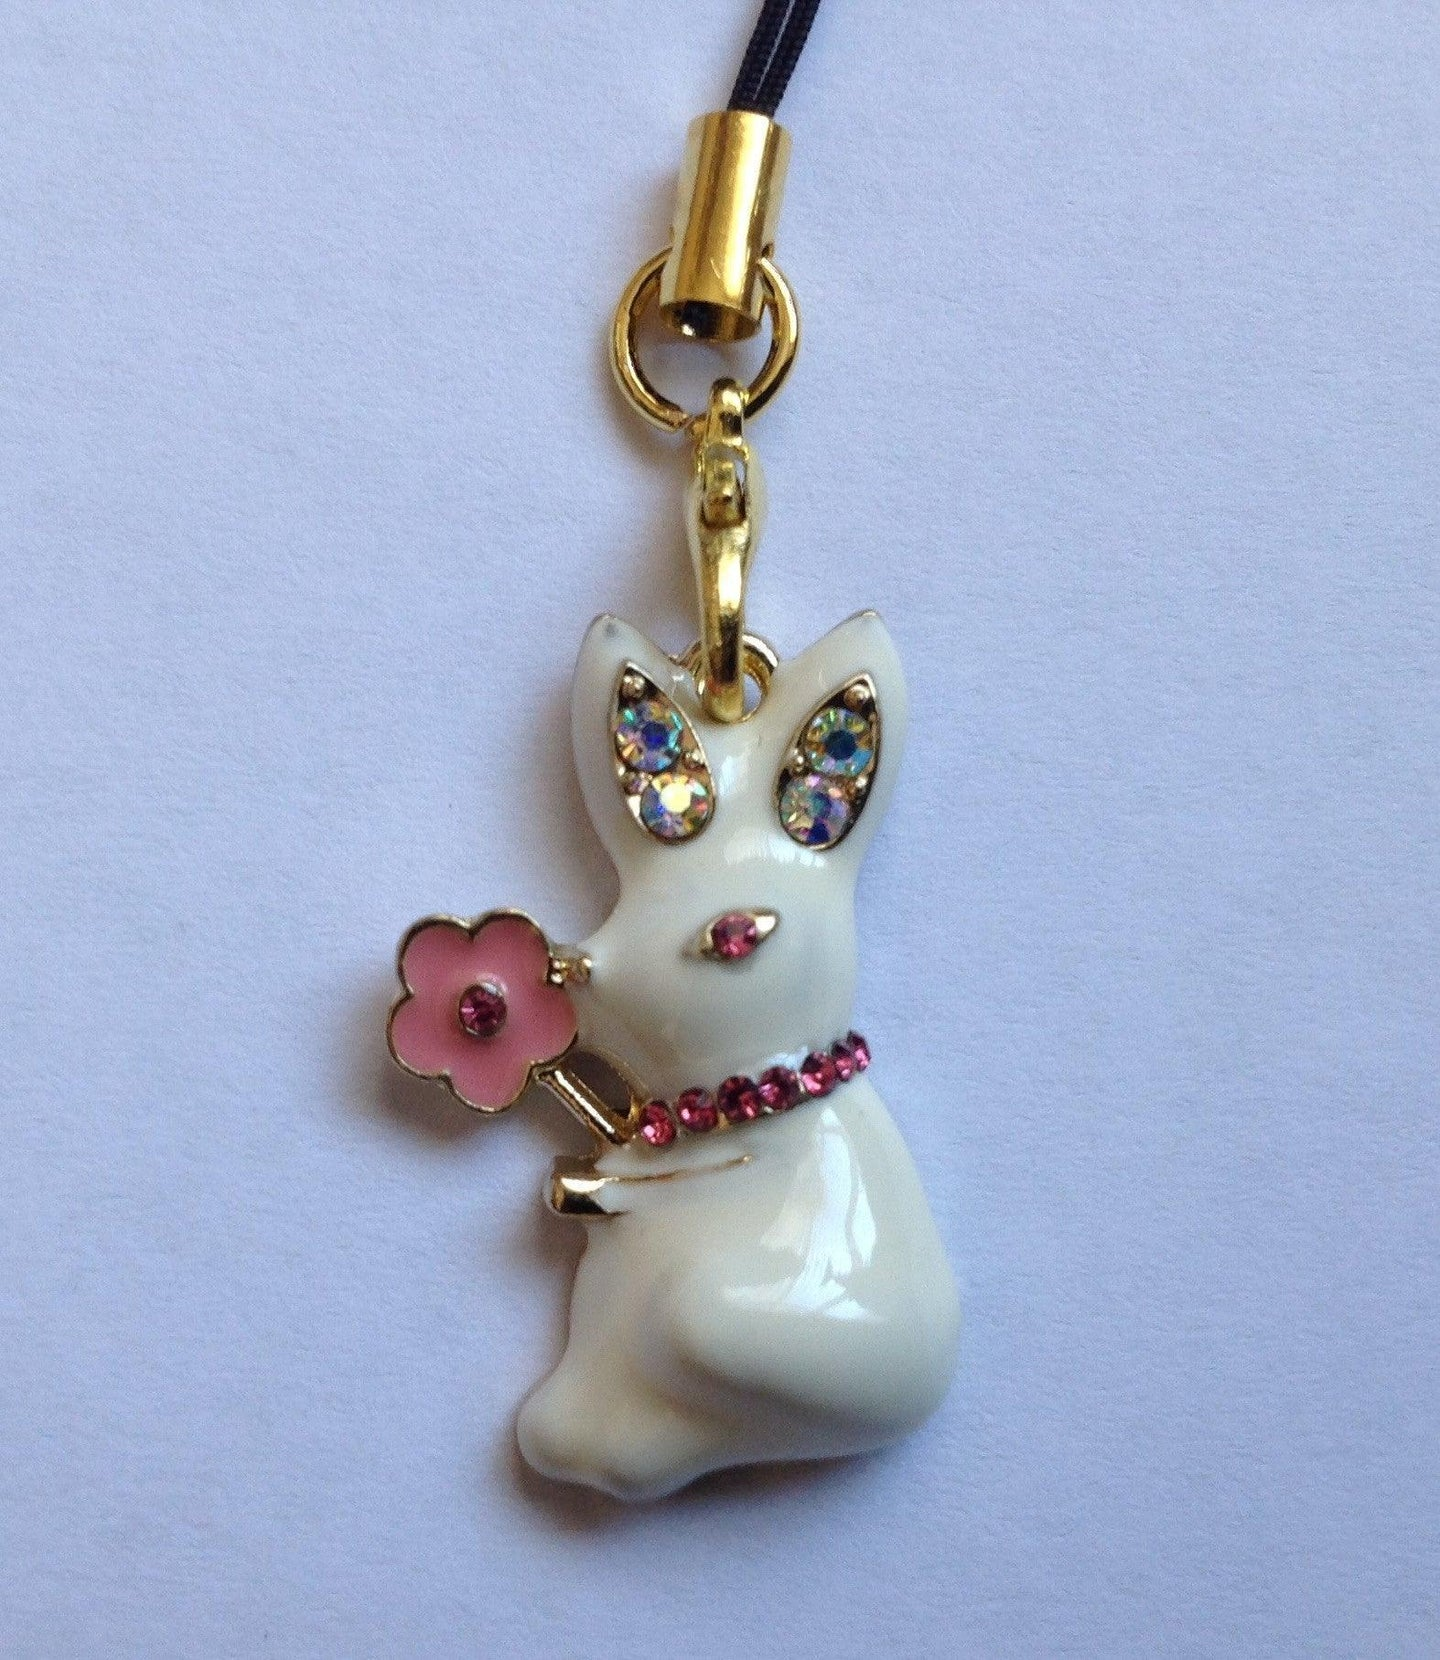 Enamel Rabbit Charm